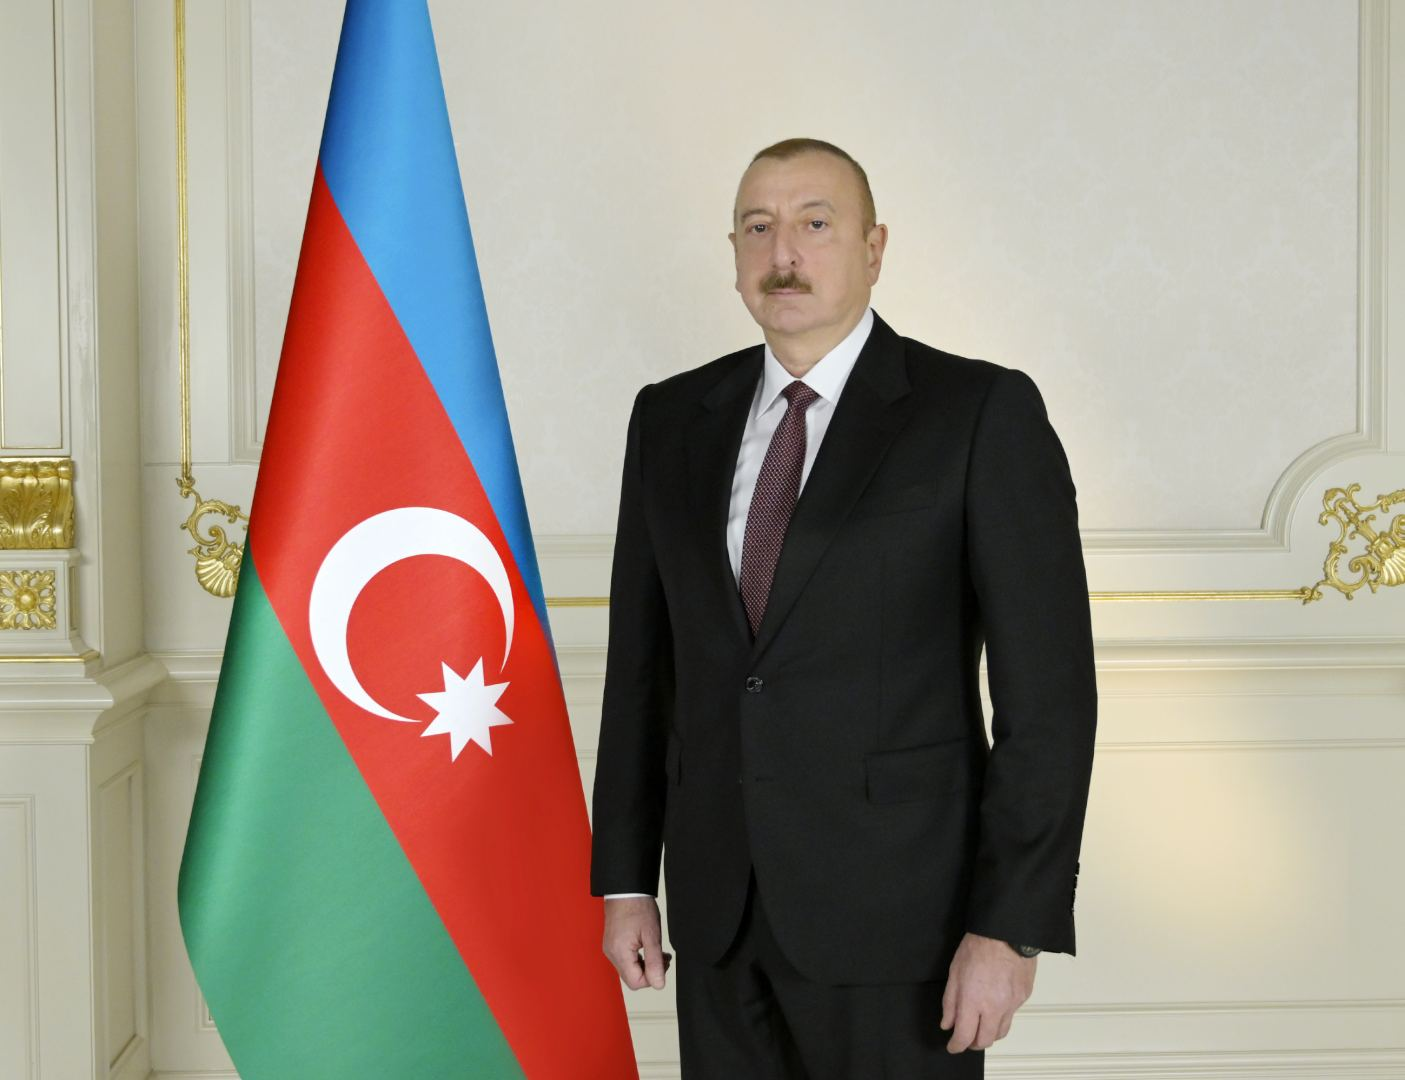 Ilham Aliyev: We All Are Deeply Concerned By Unequal, Unfair Distribution Of Vaccines